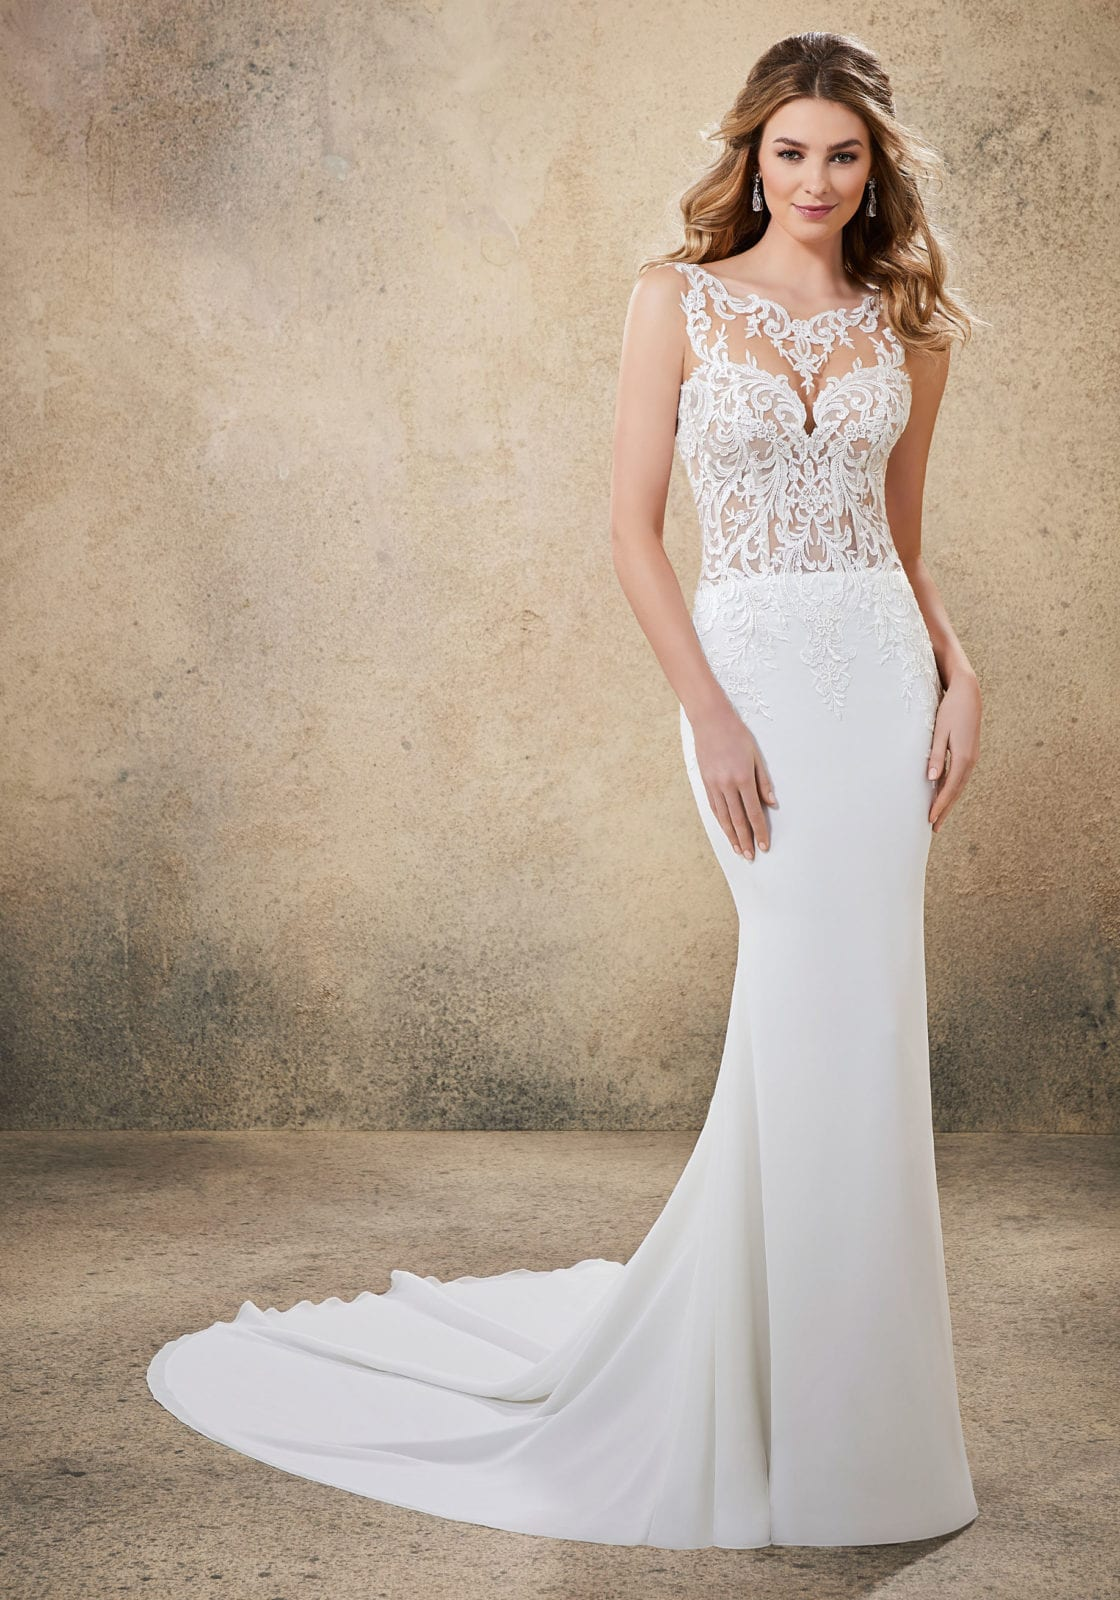 Hight neck line wedding dress with simple skirt.